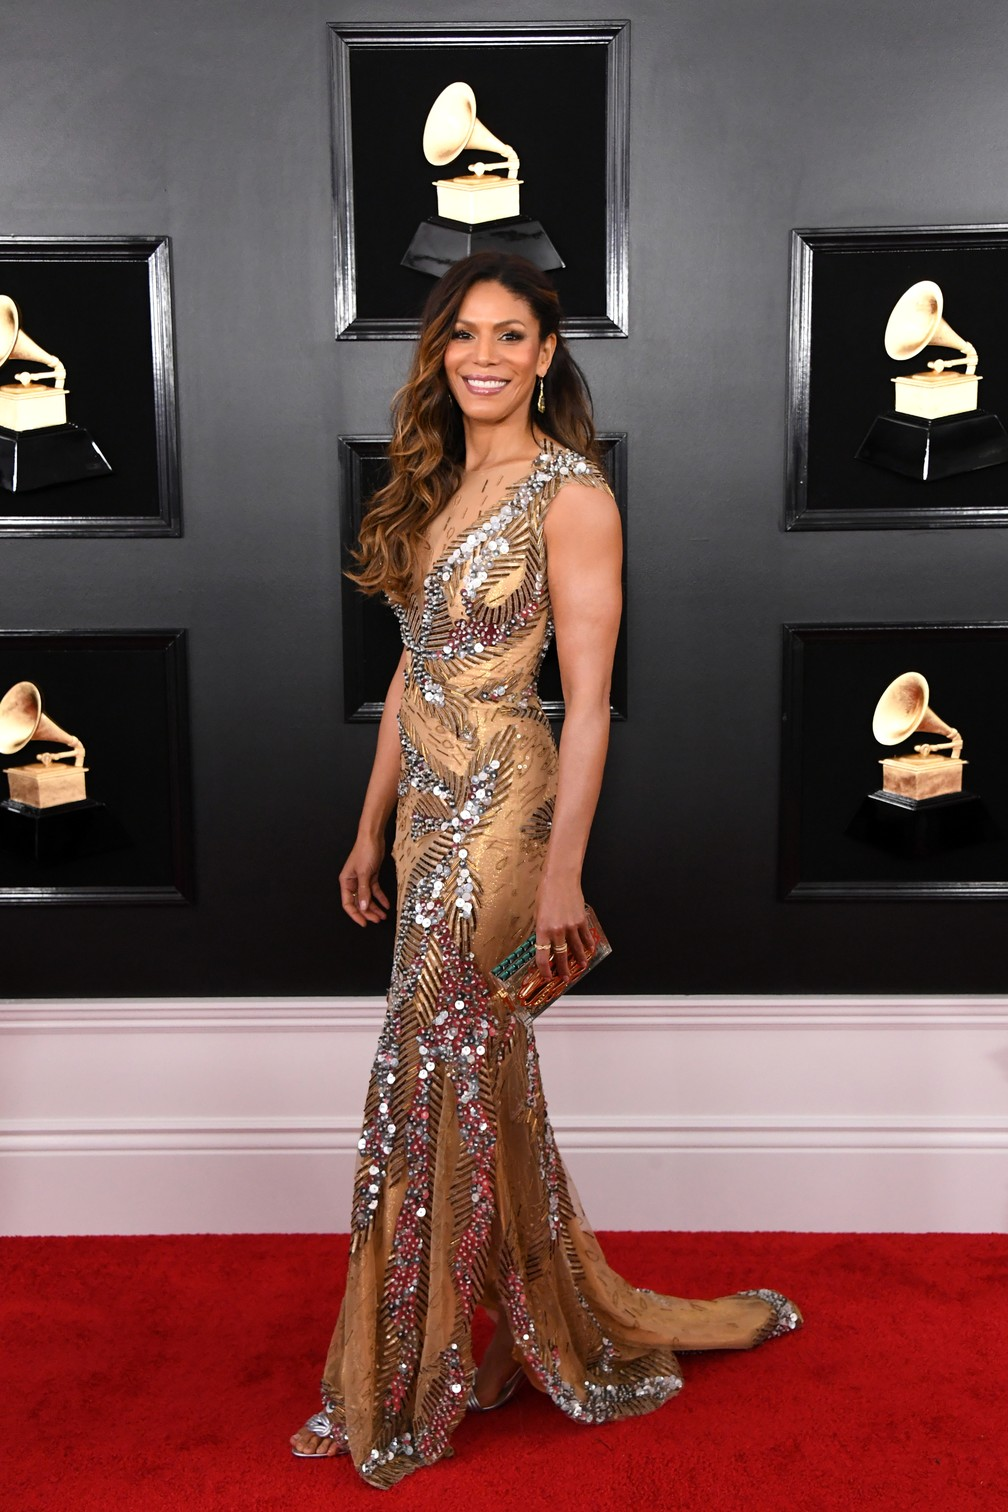 Atriz e cantora Merle Dandridge no Grammy 2019 — Foto: Jon Kopaloff/Getty Images North America/AFP